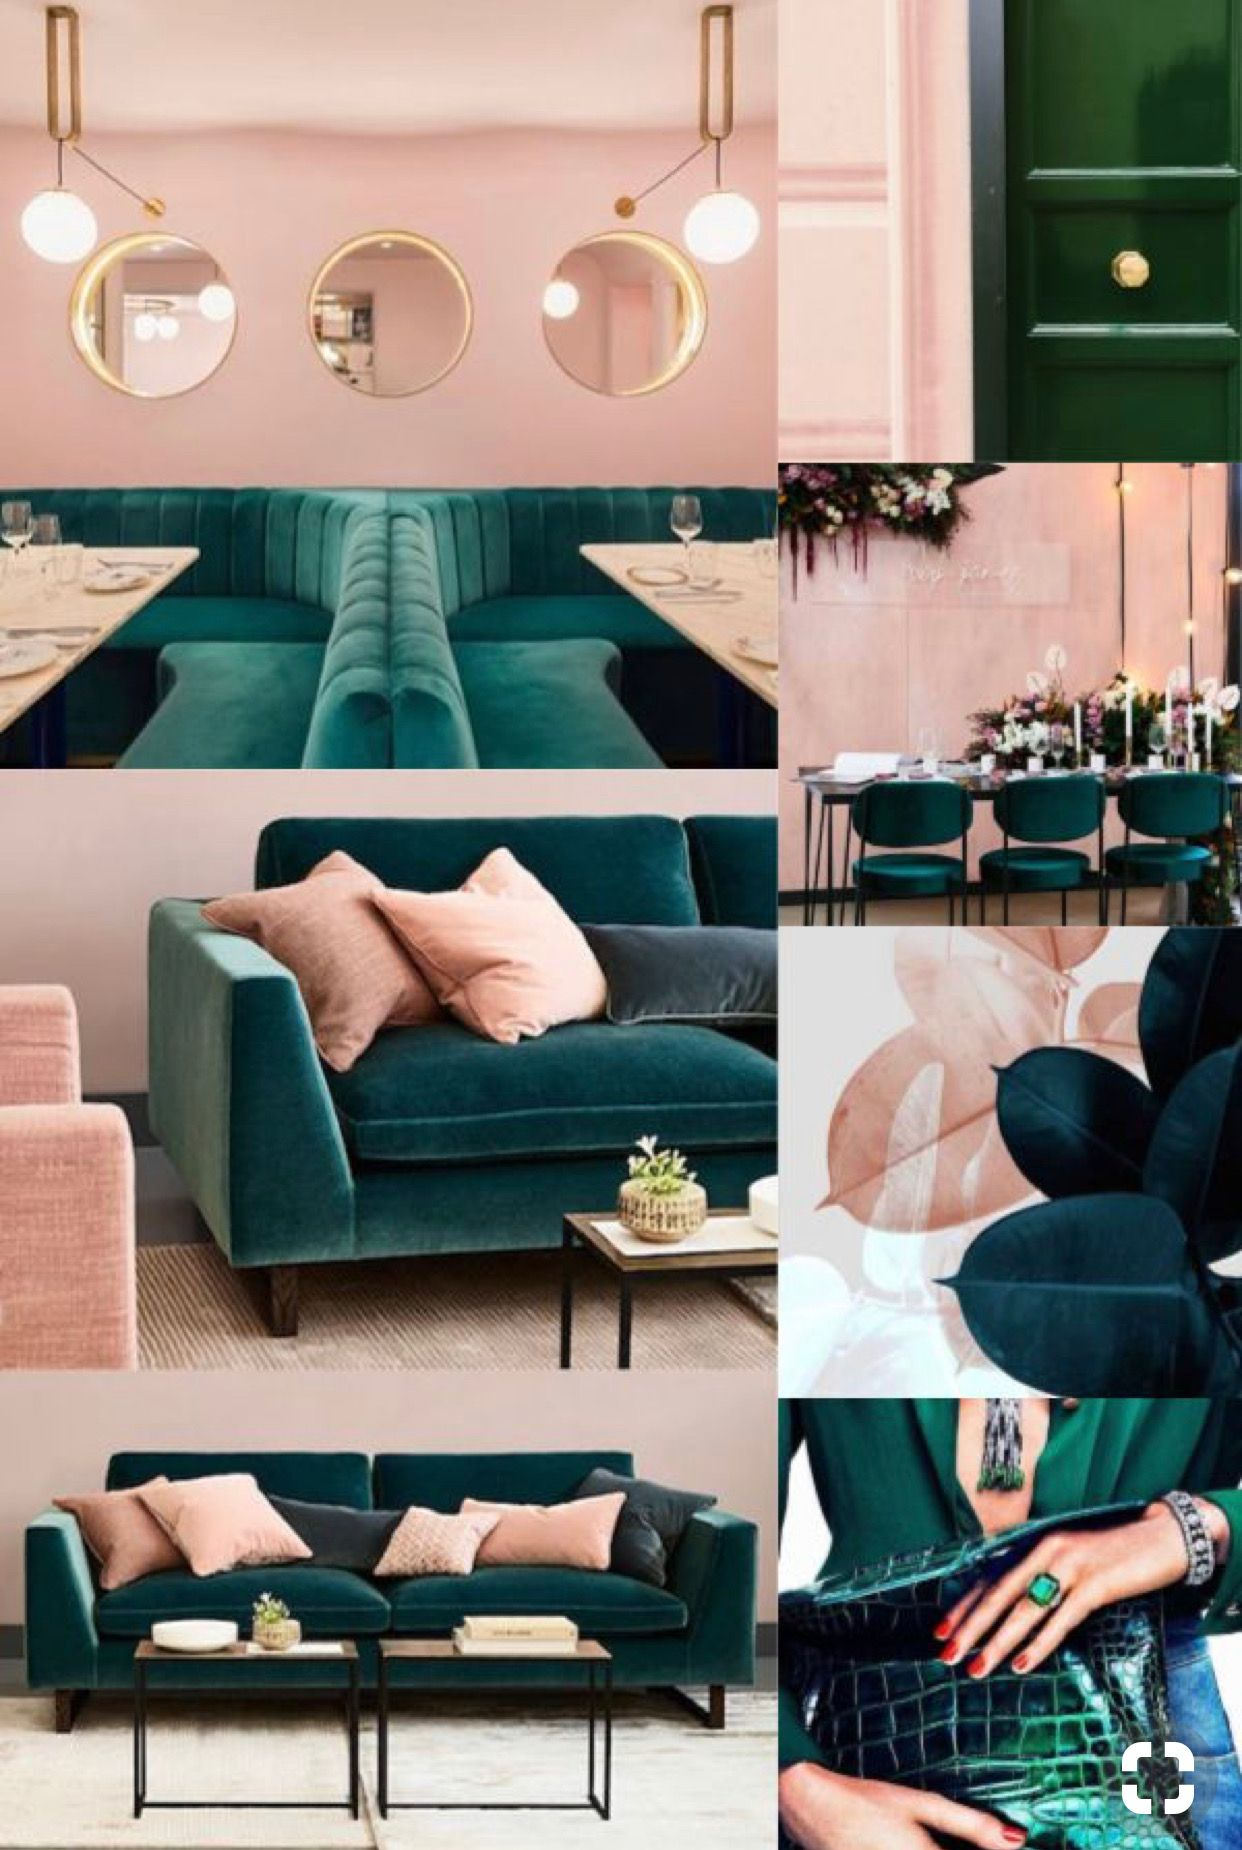 Pin By Vanessa On Gorgeous Greens Living Room Green Living Room Decor Home Decor Inspiration